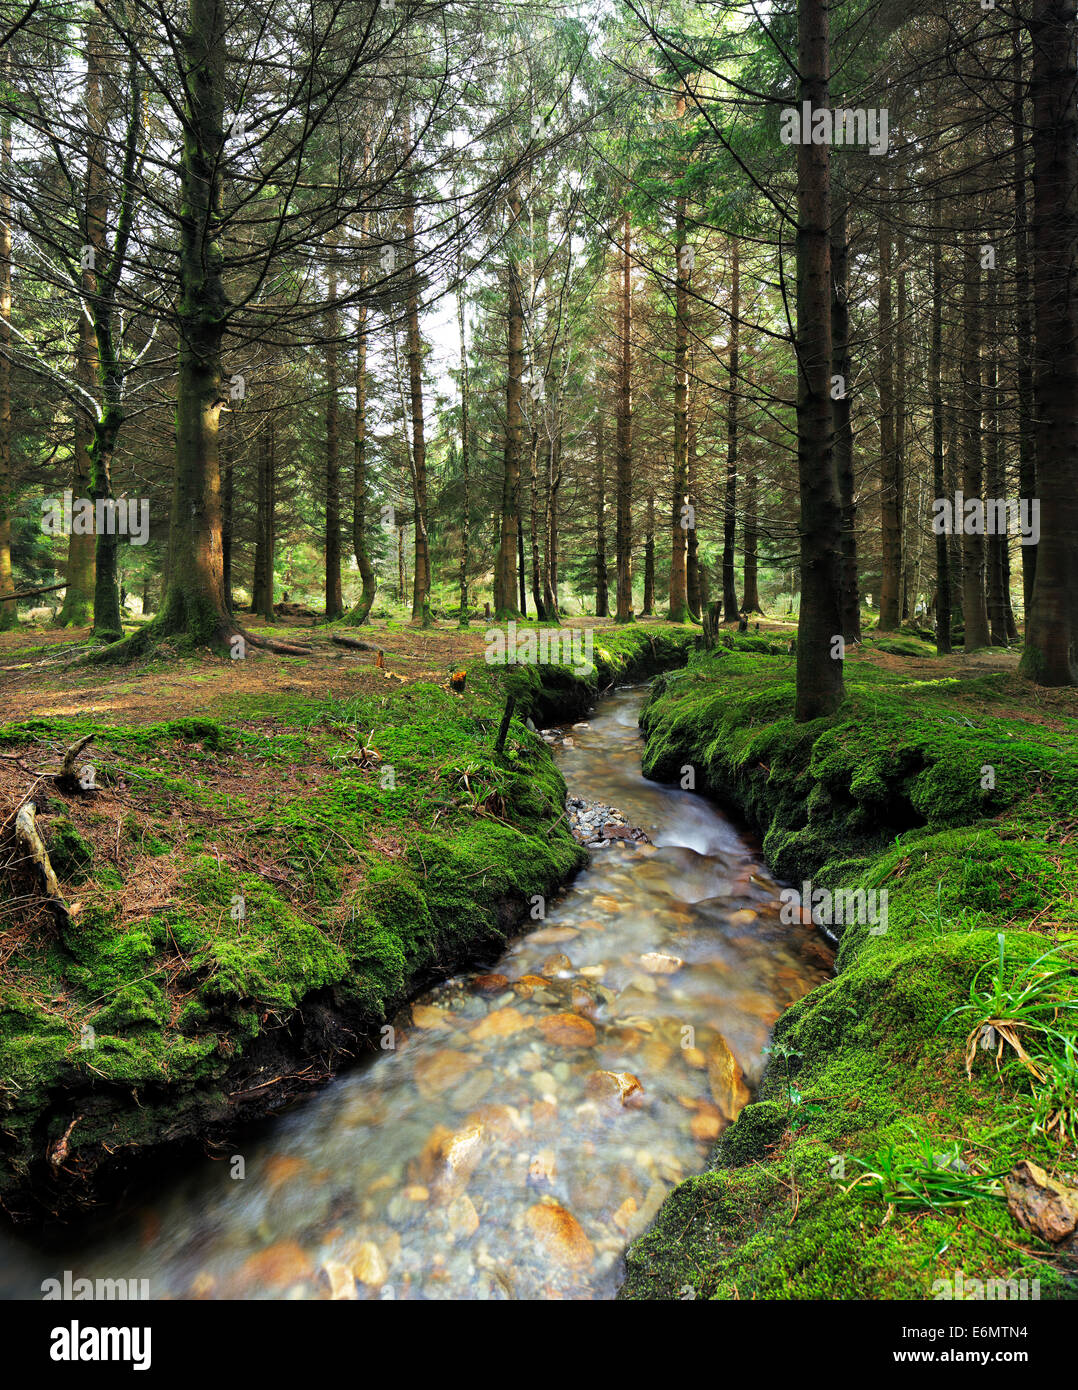 Stream in the forest surrounded by a beautiful scenic - Stock Image